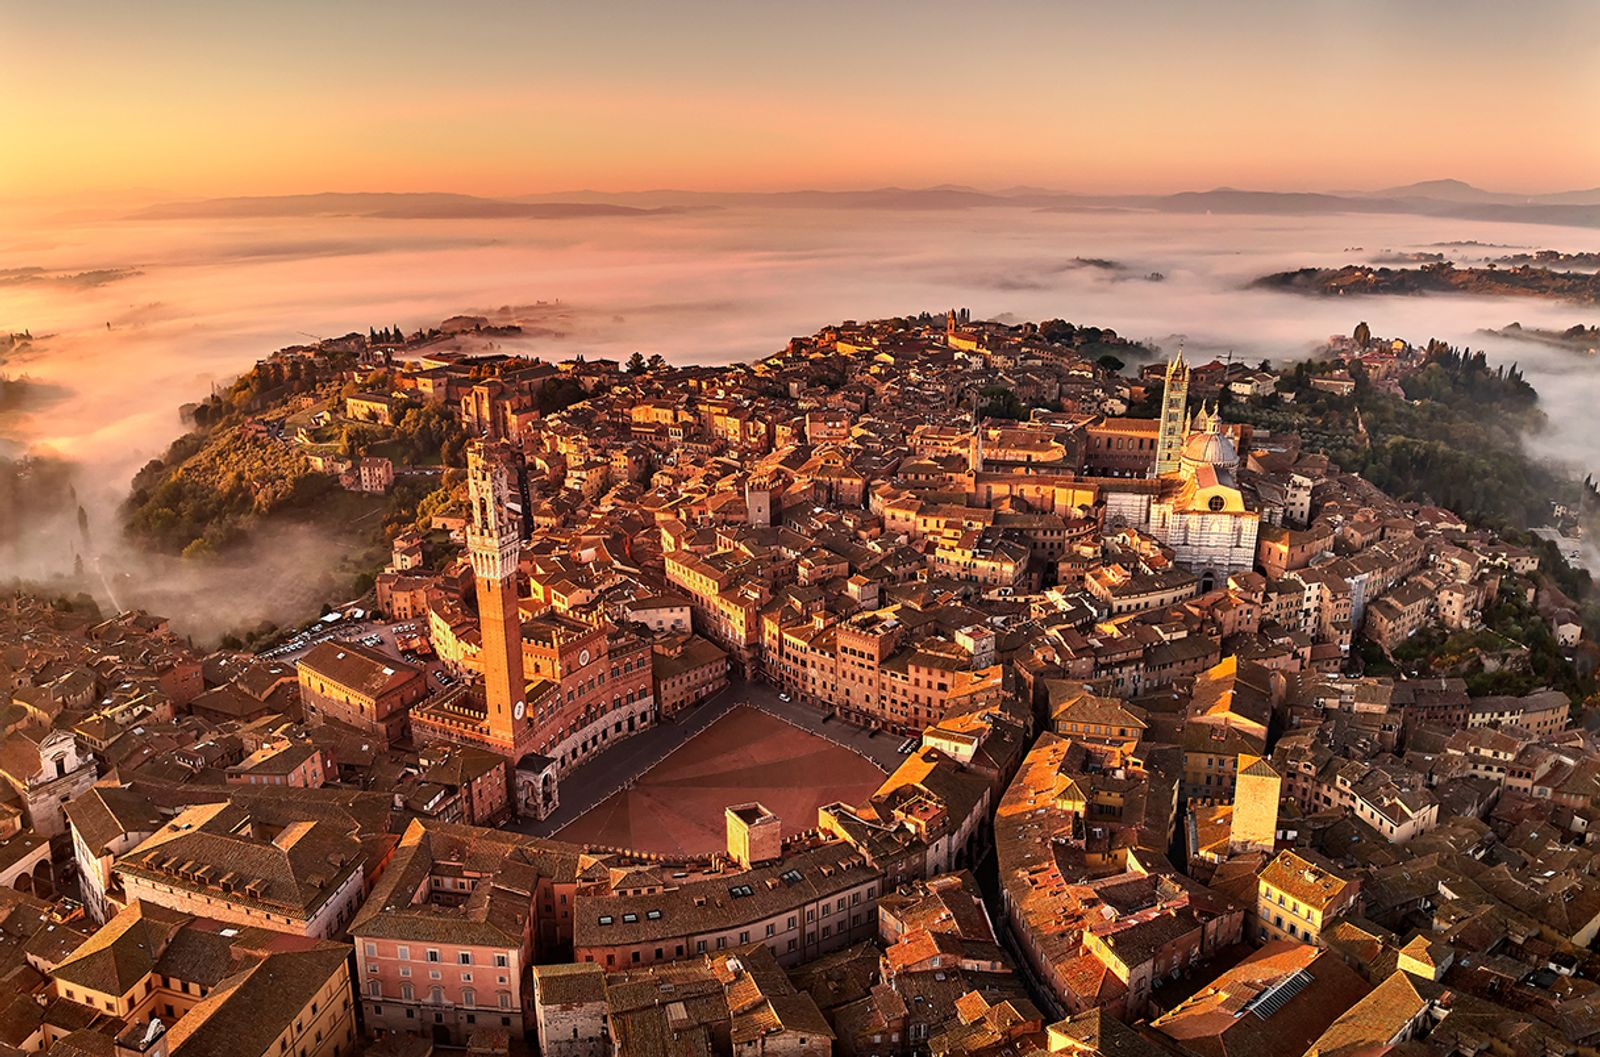 Siena under fog siege